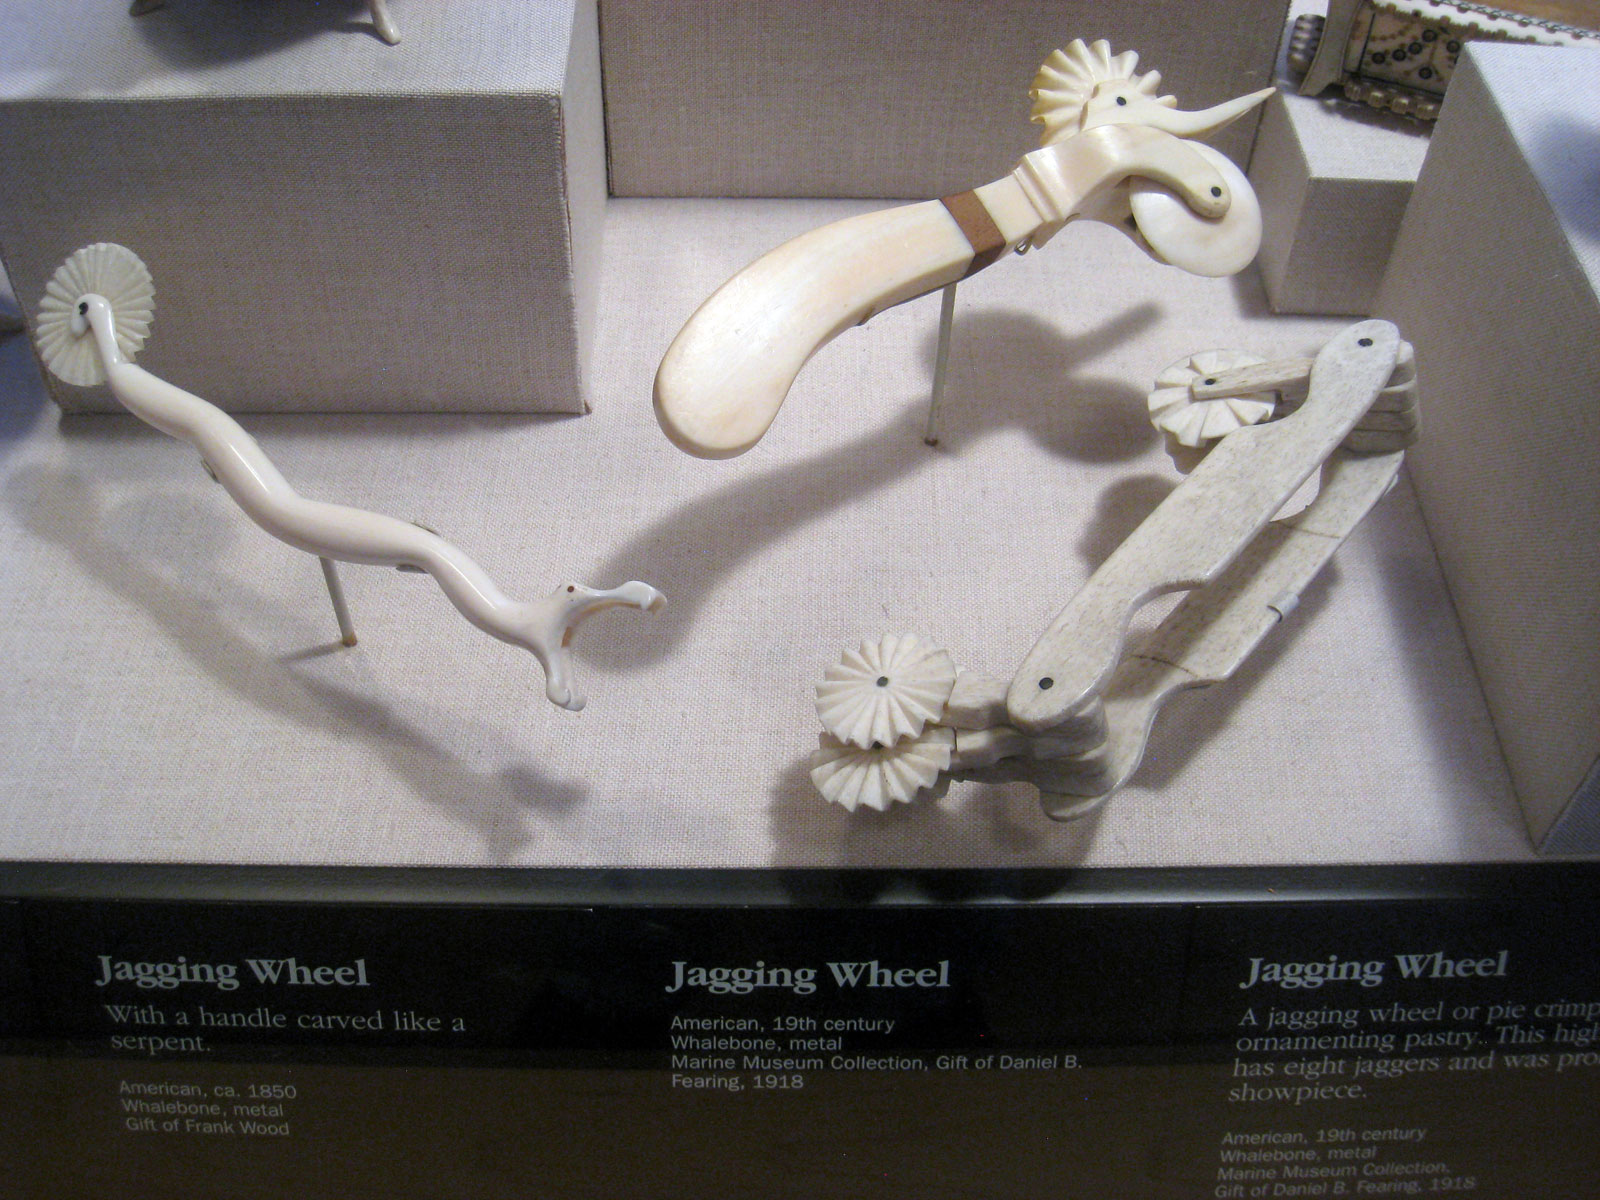 Pastry jiggers made of whalebone,